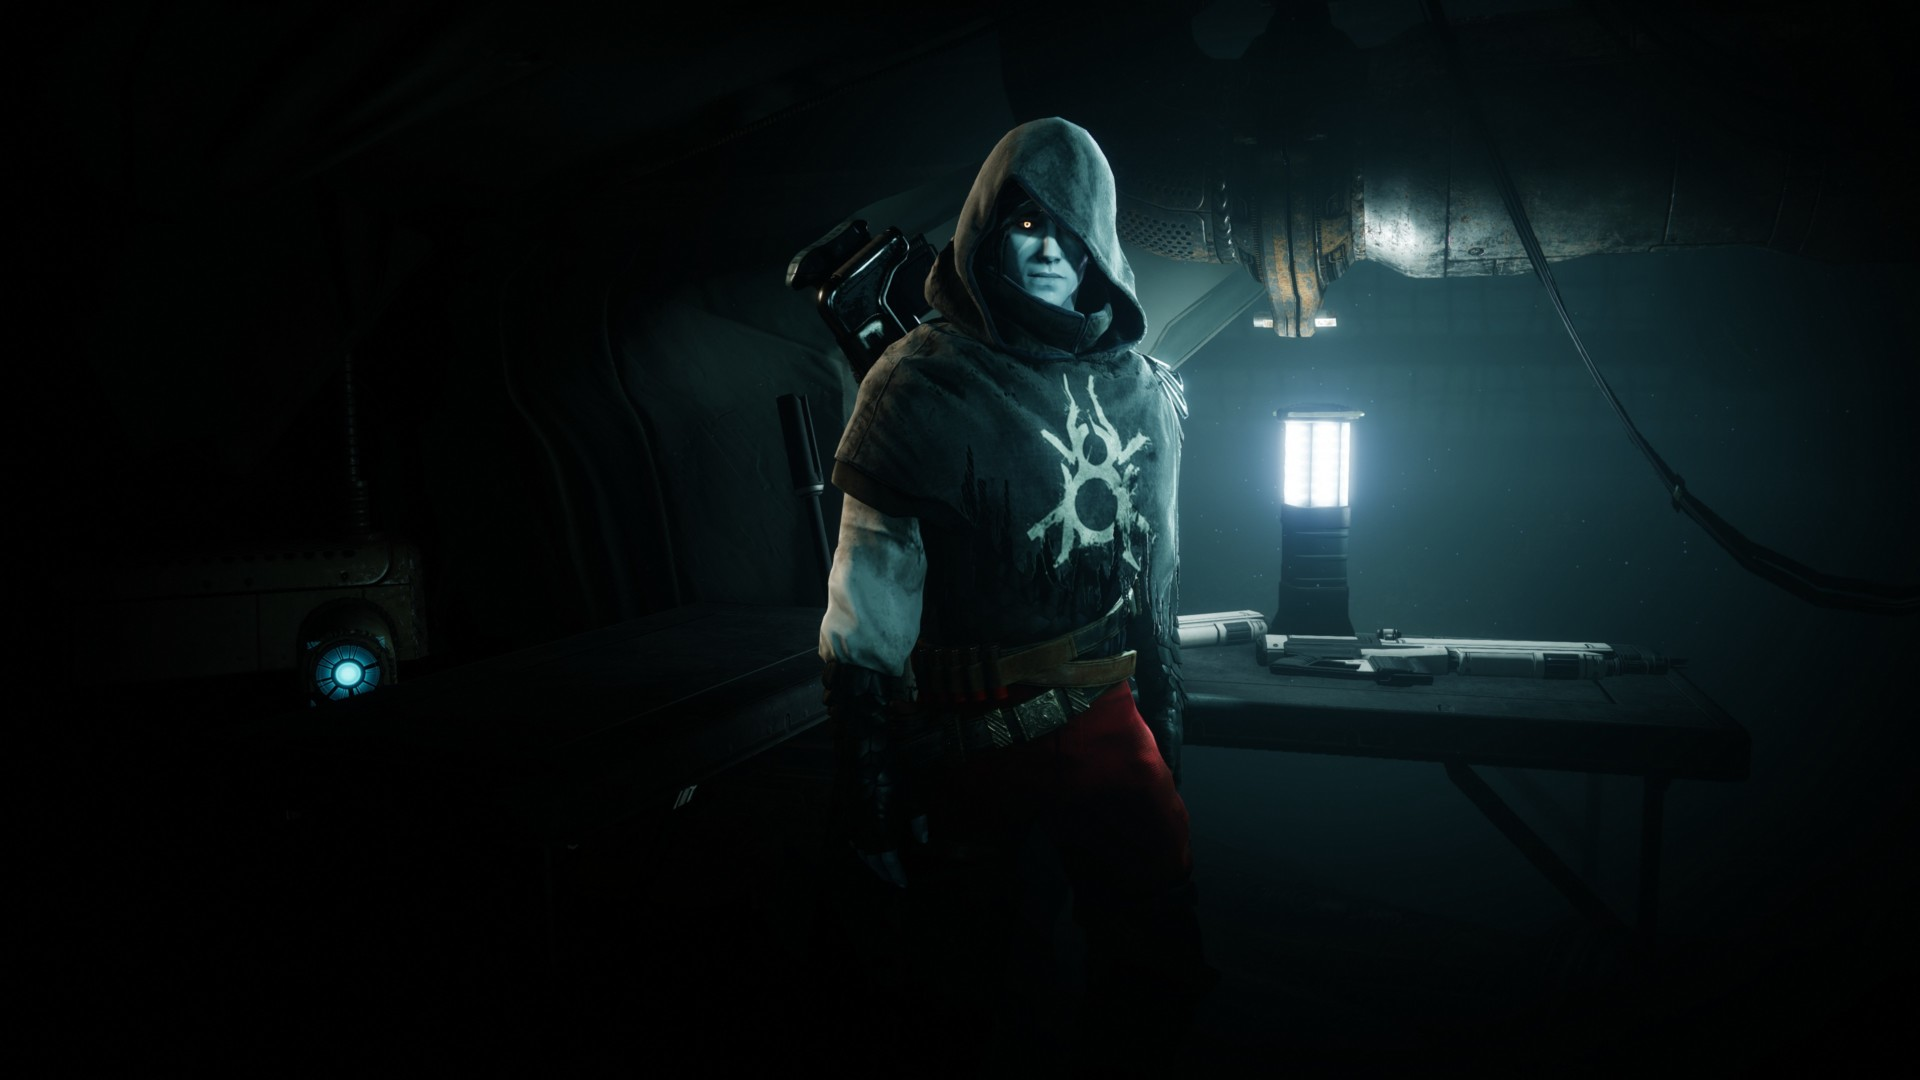 The Crow - Bounties & Challenges